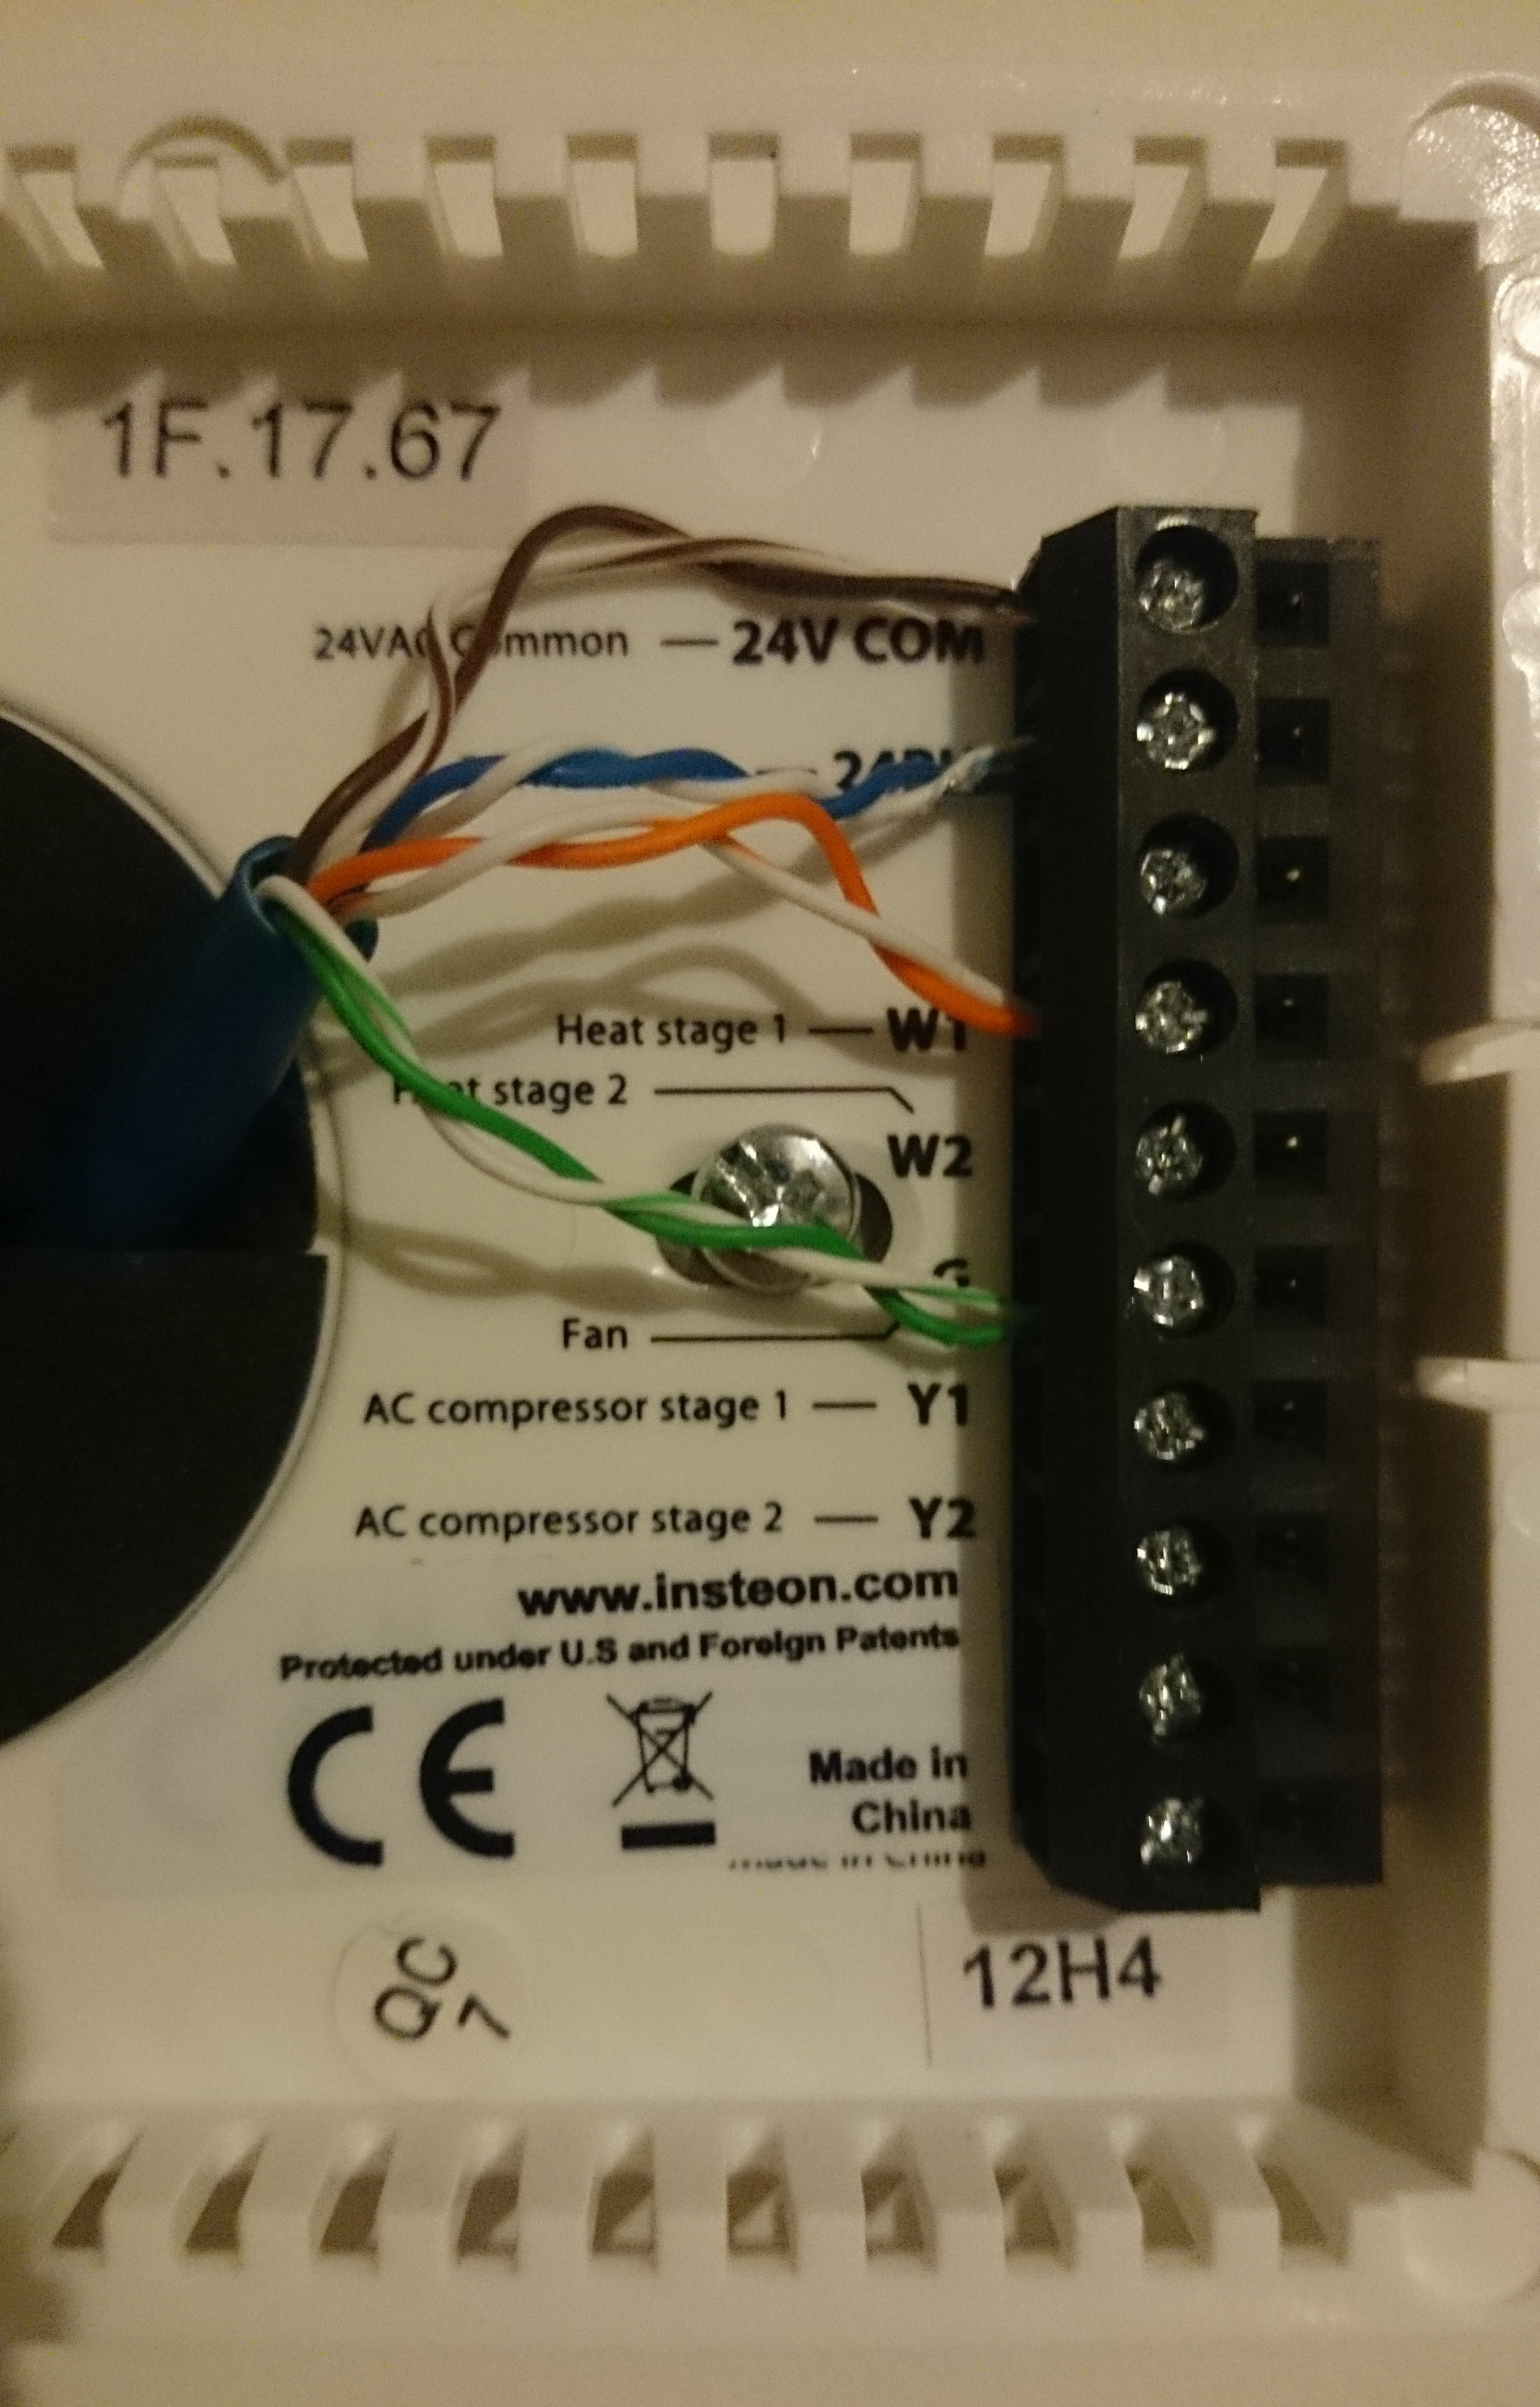 Insteon Thermostat Wiring Diagram R33 Auto Data Today1998 Chevy Trailer Ke Schematic Electrical